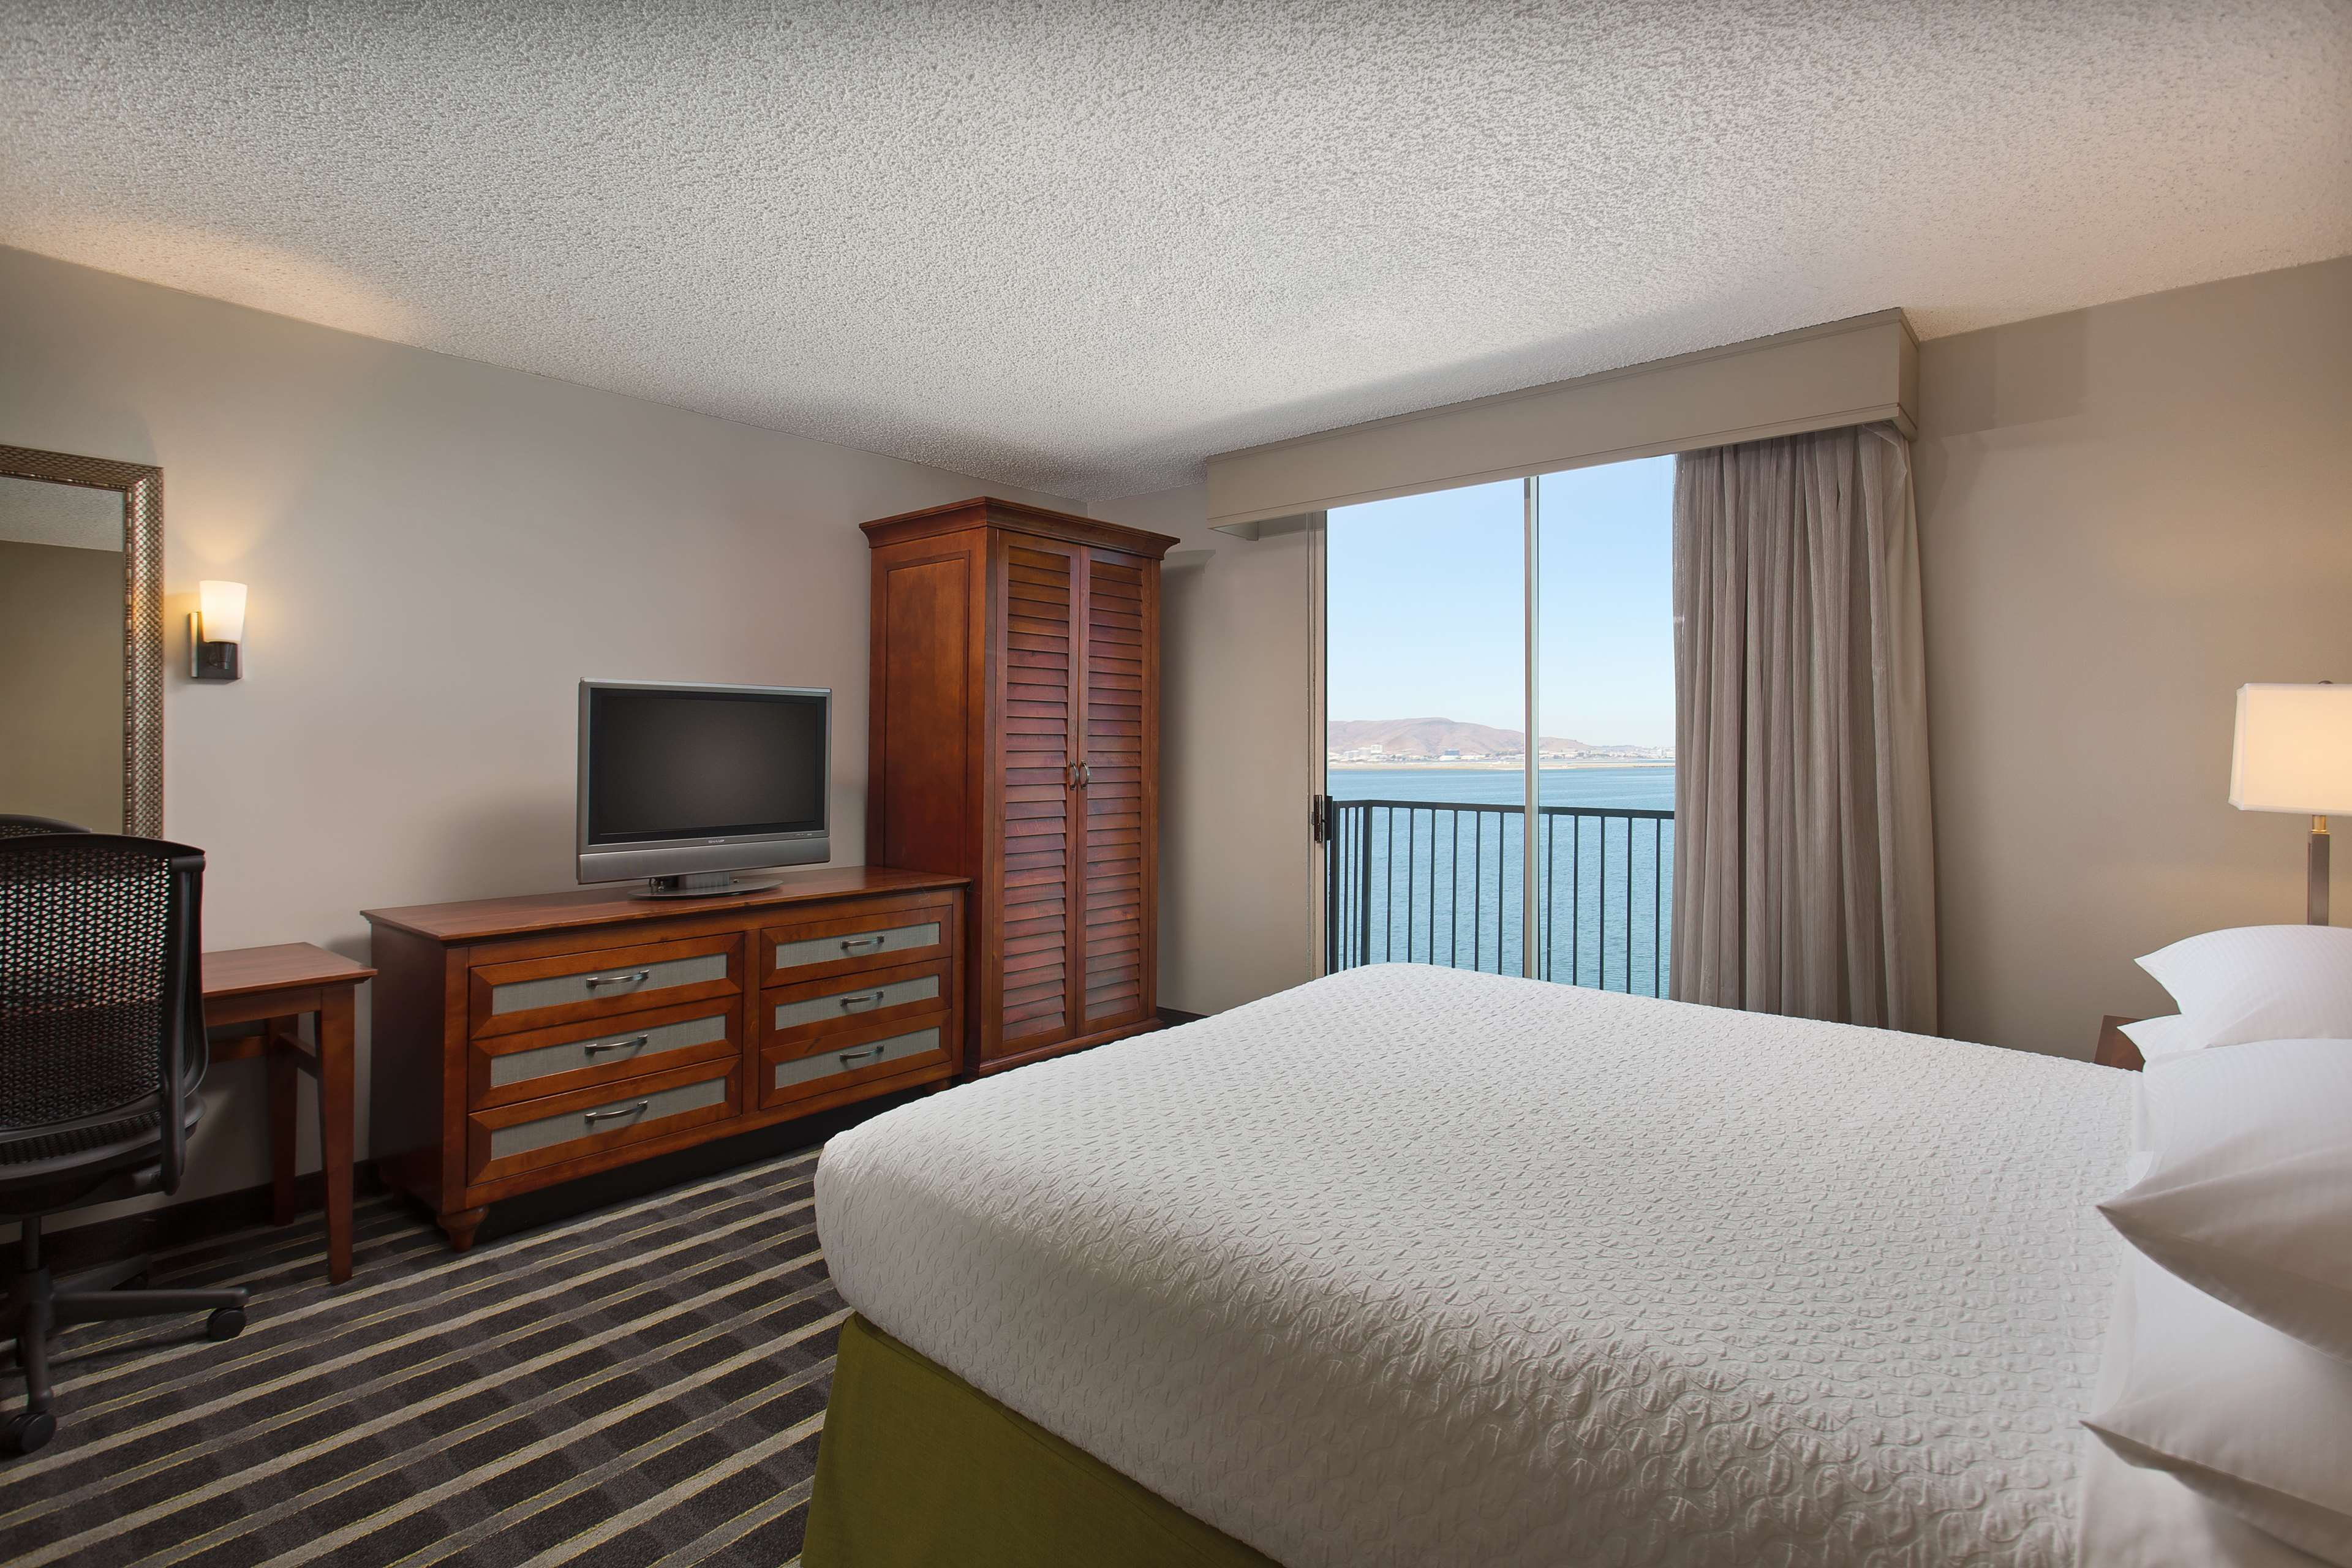 Embassy Suites by Hilton San Francisco Airport Waterfront image 31